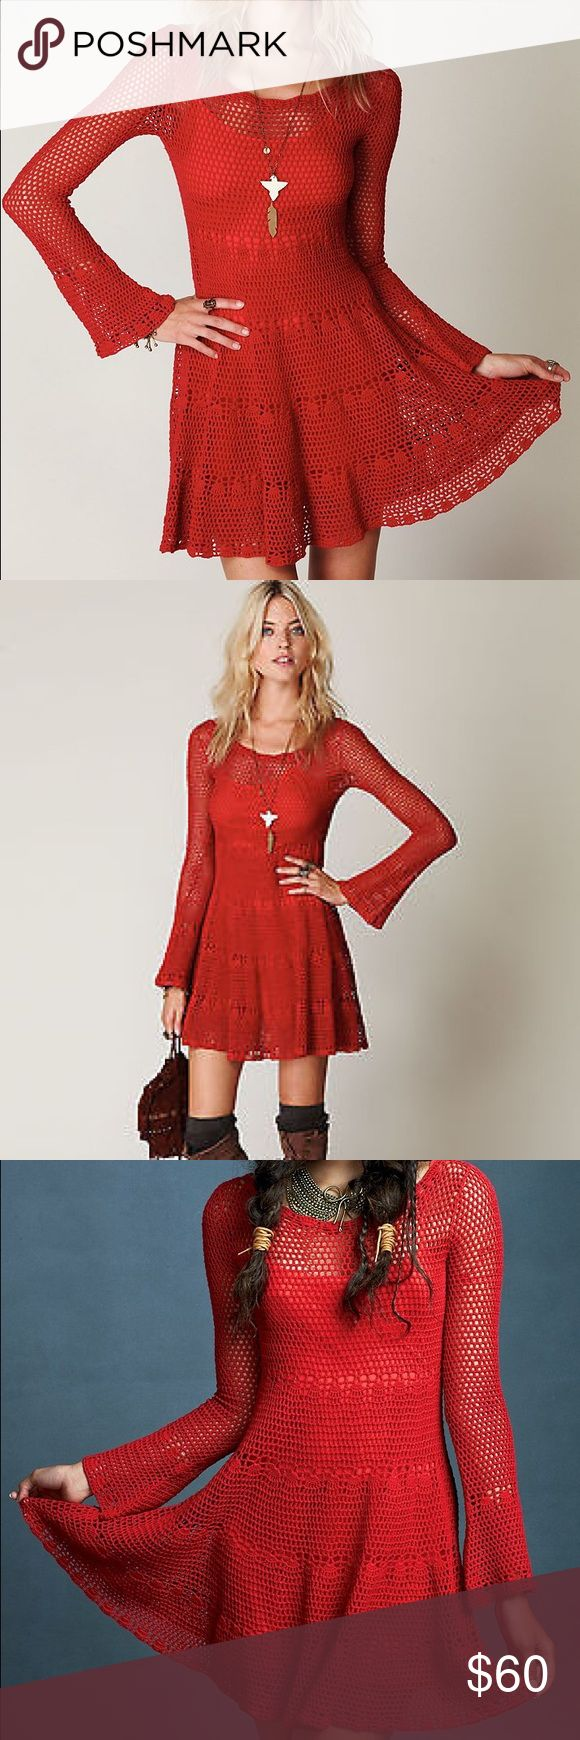 Free People Bell Crochet Mini Dress Beautiful Free People 100% cotton Medium red crochet dress with flare bell sleeves, flare skirt, and built in matching slip. Very flattering on! (Only worn once.) Free People Dresses Mini